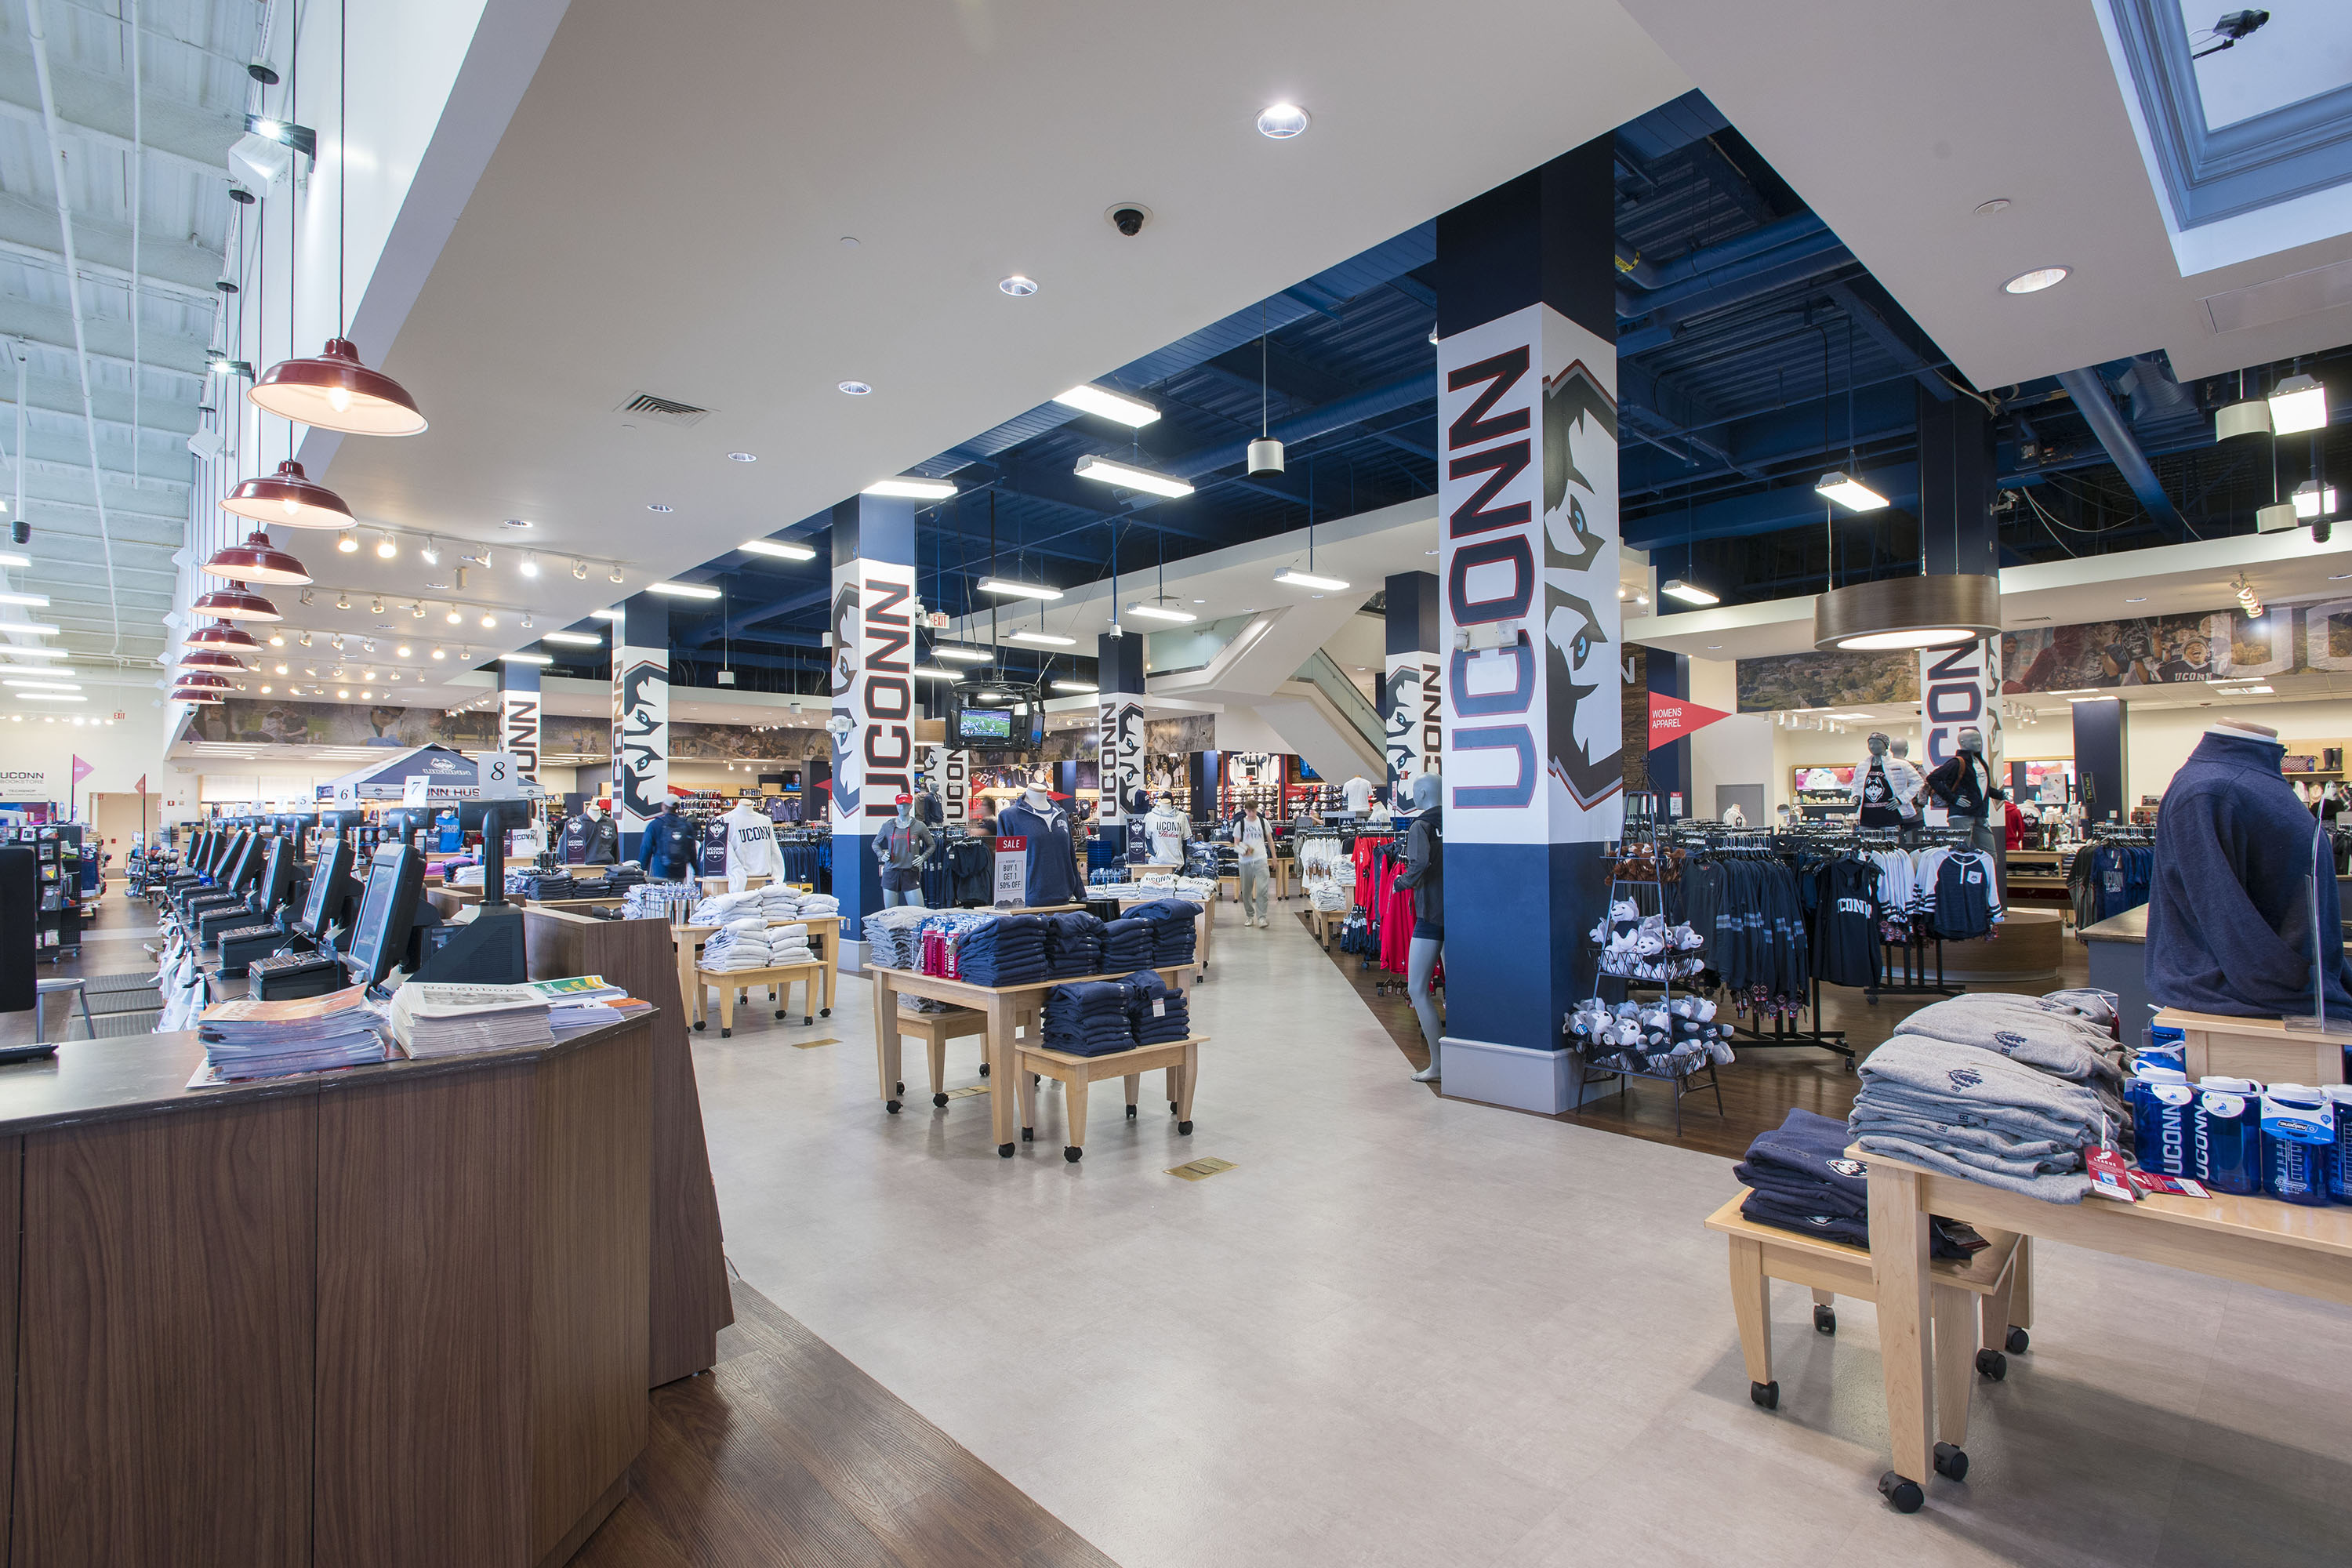 uconn bookstore deal with b u0026n generating millions for